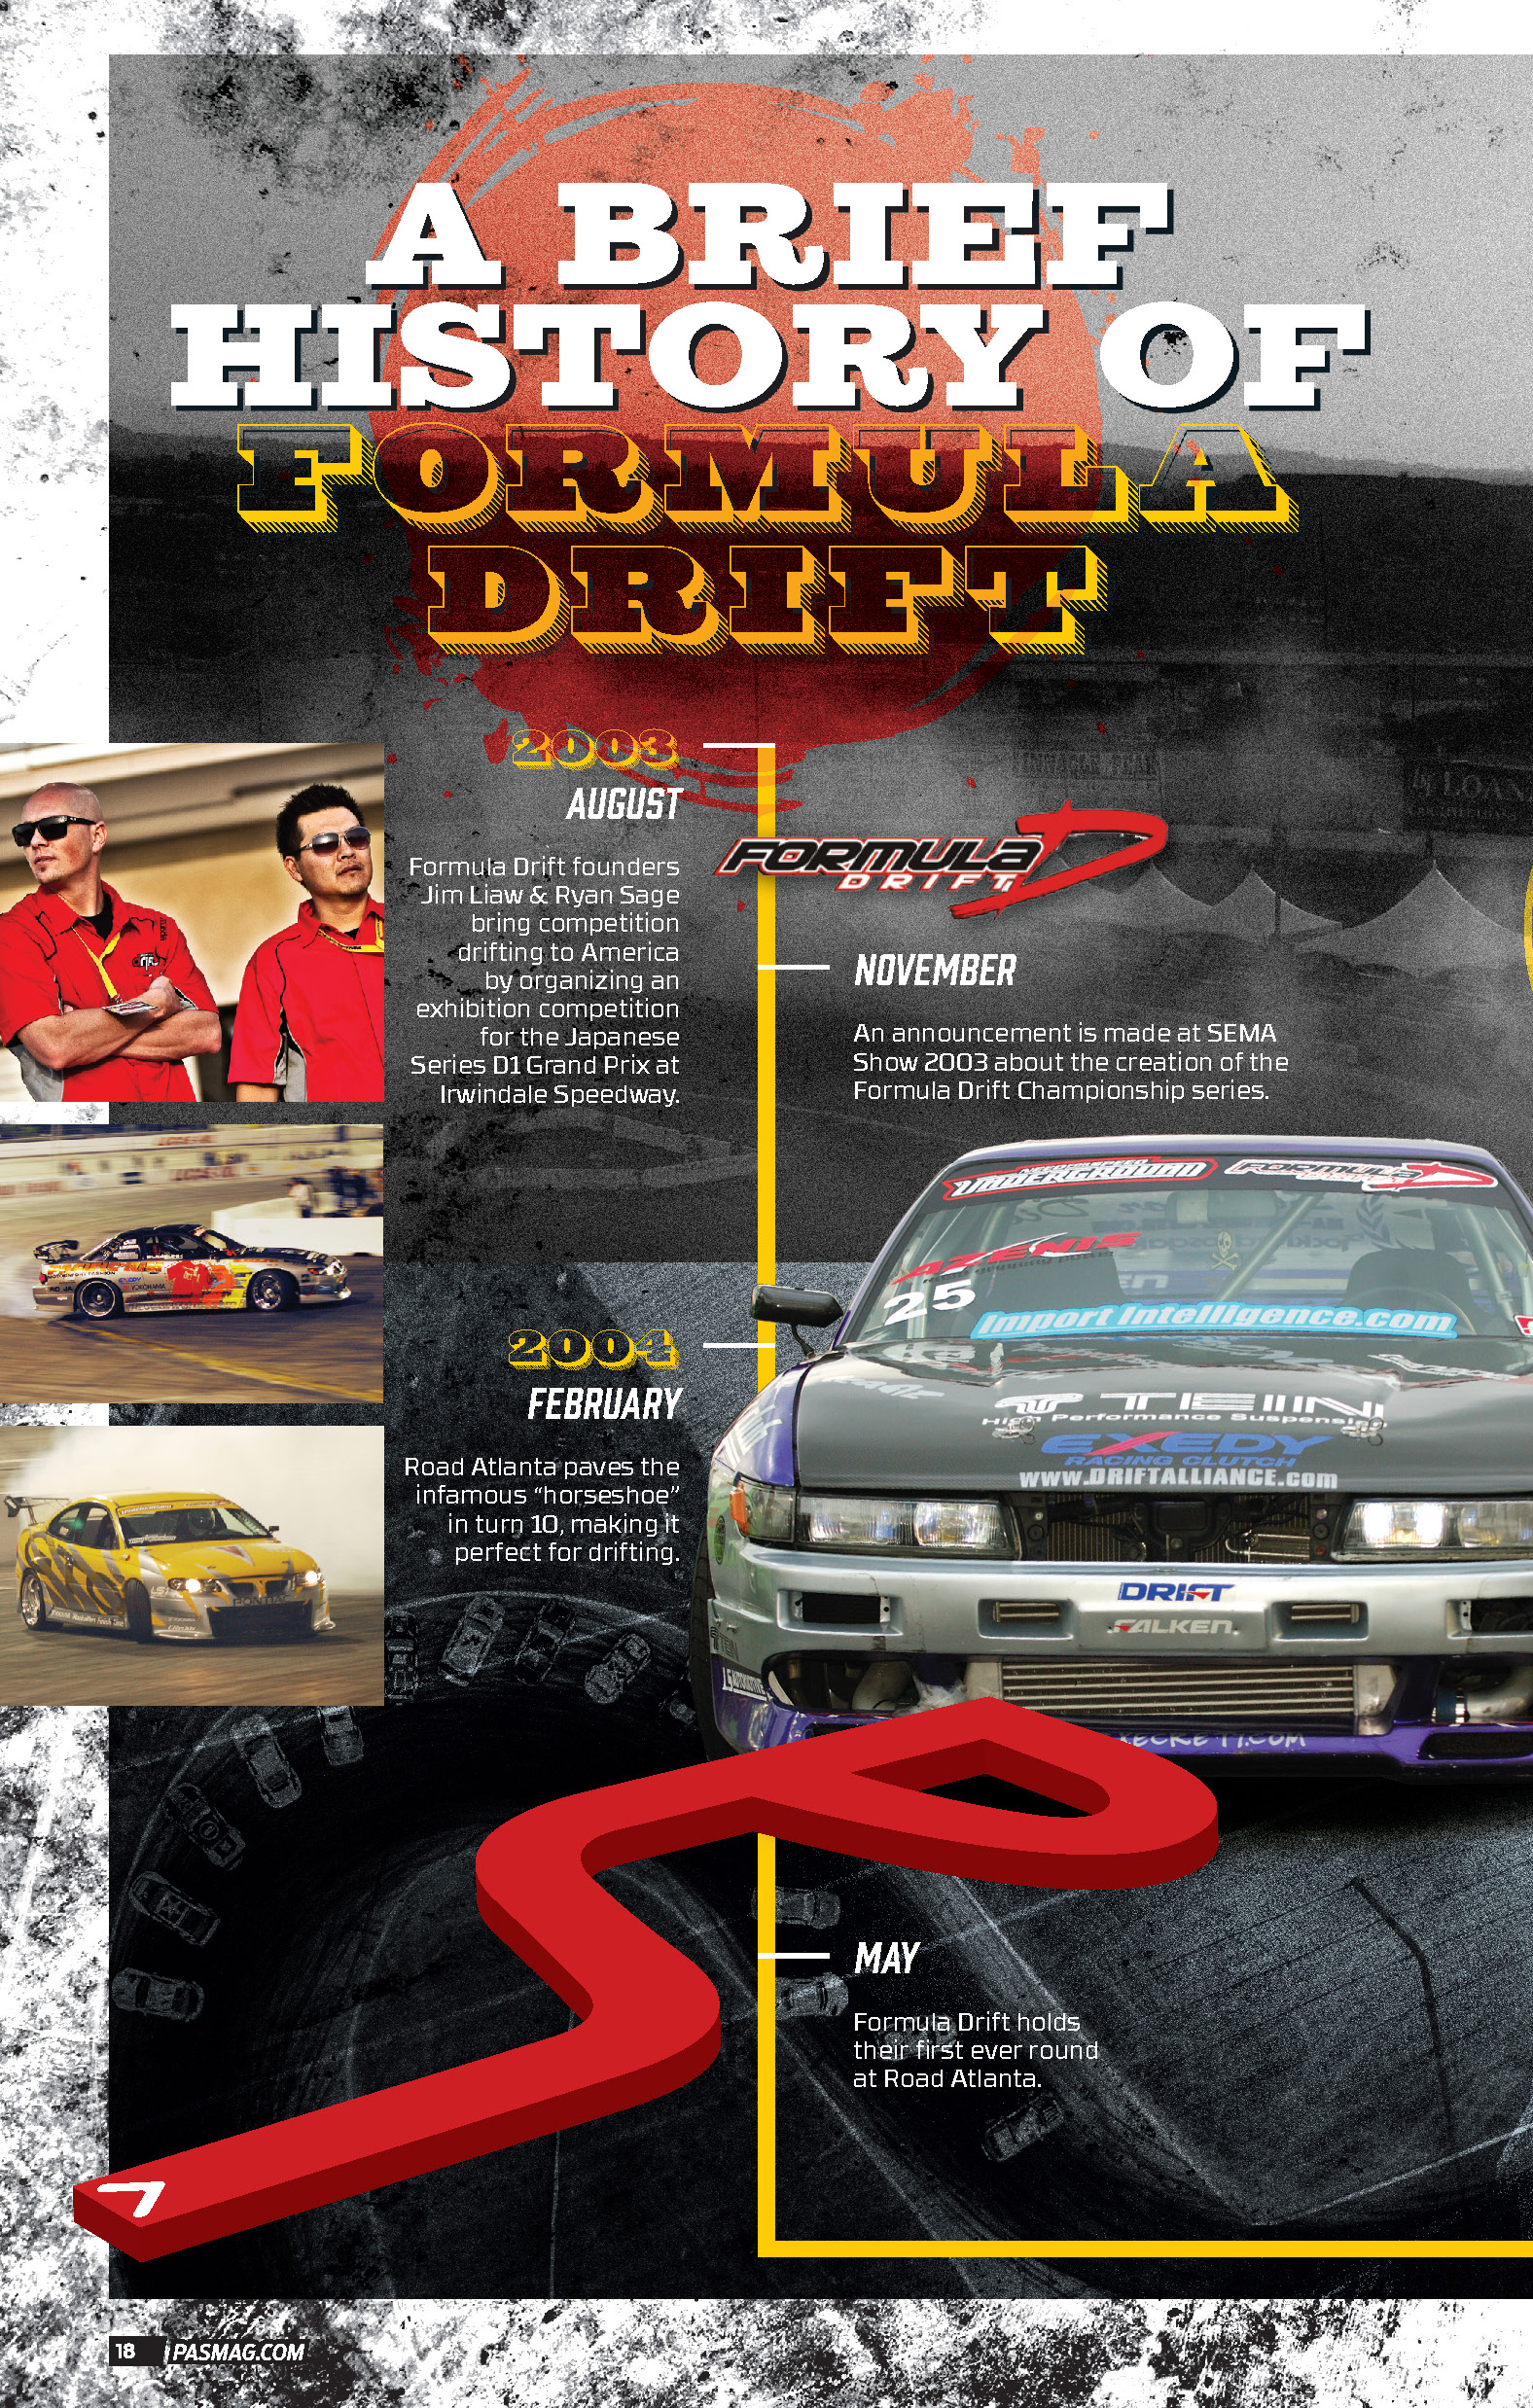 Formula drift rules